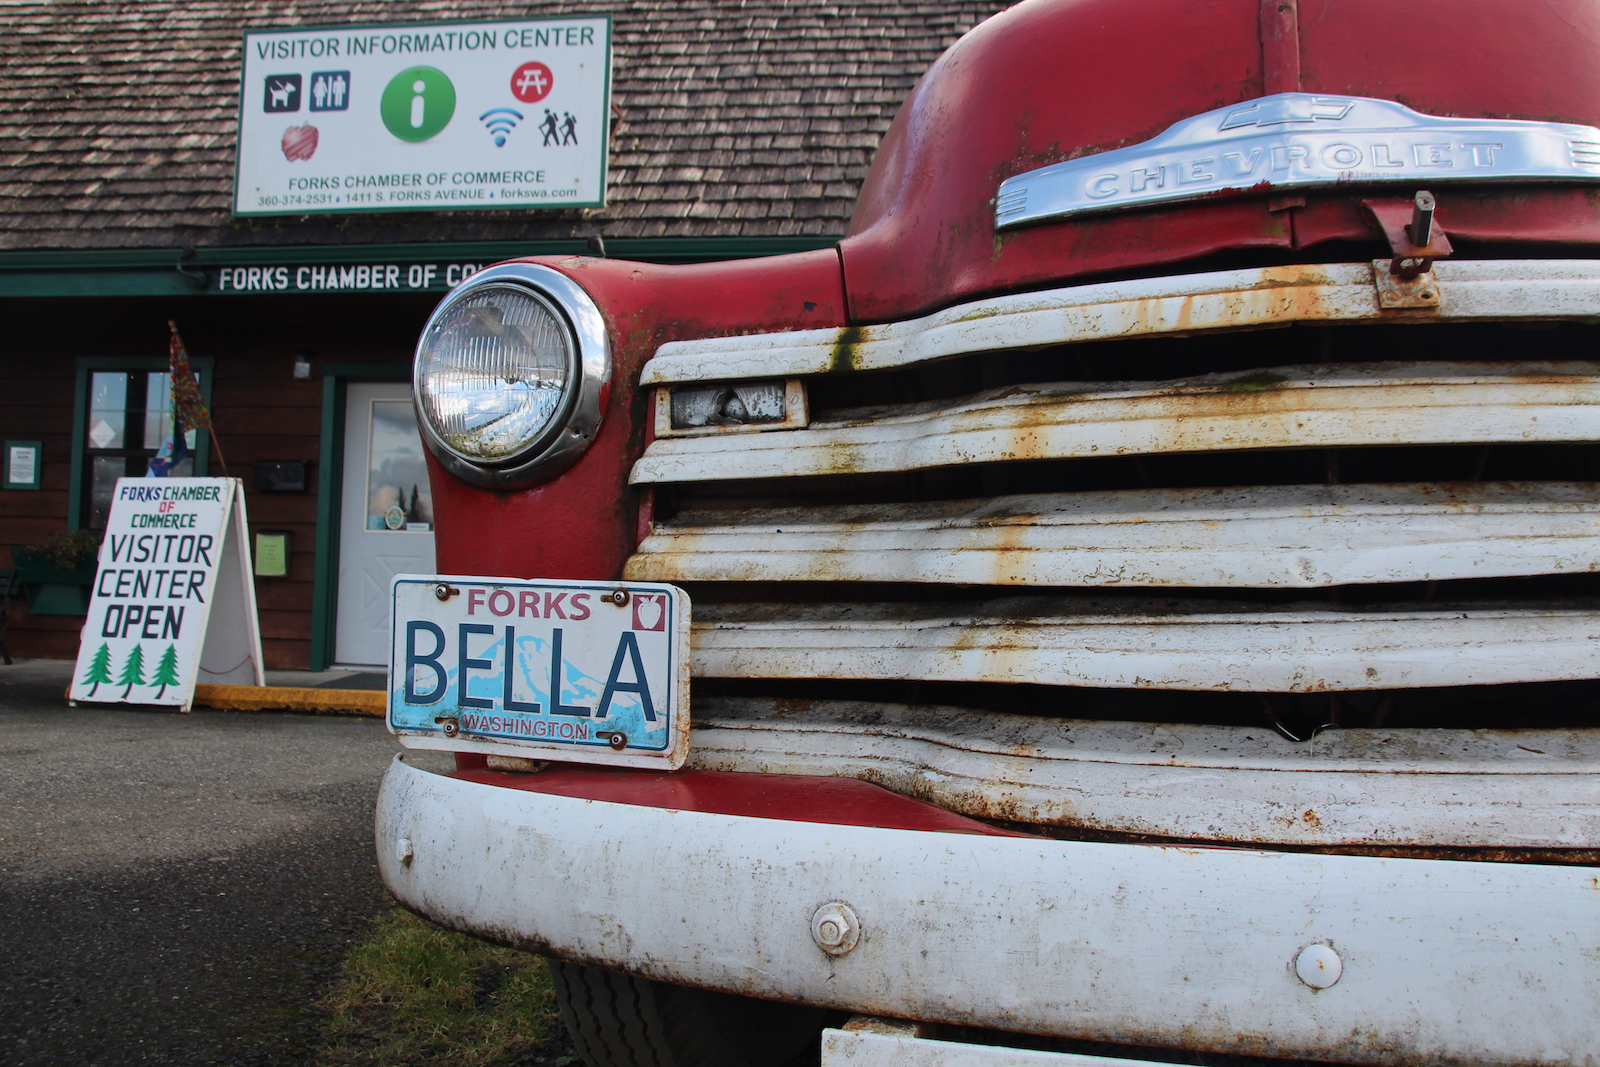 An old red truck with a dirty white grate and a license plate that says BELLA is parked in front of a building with a sign marked visitor's center